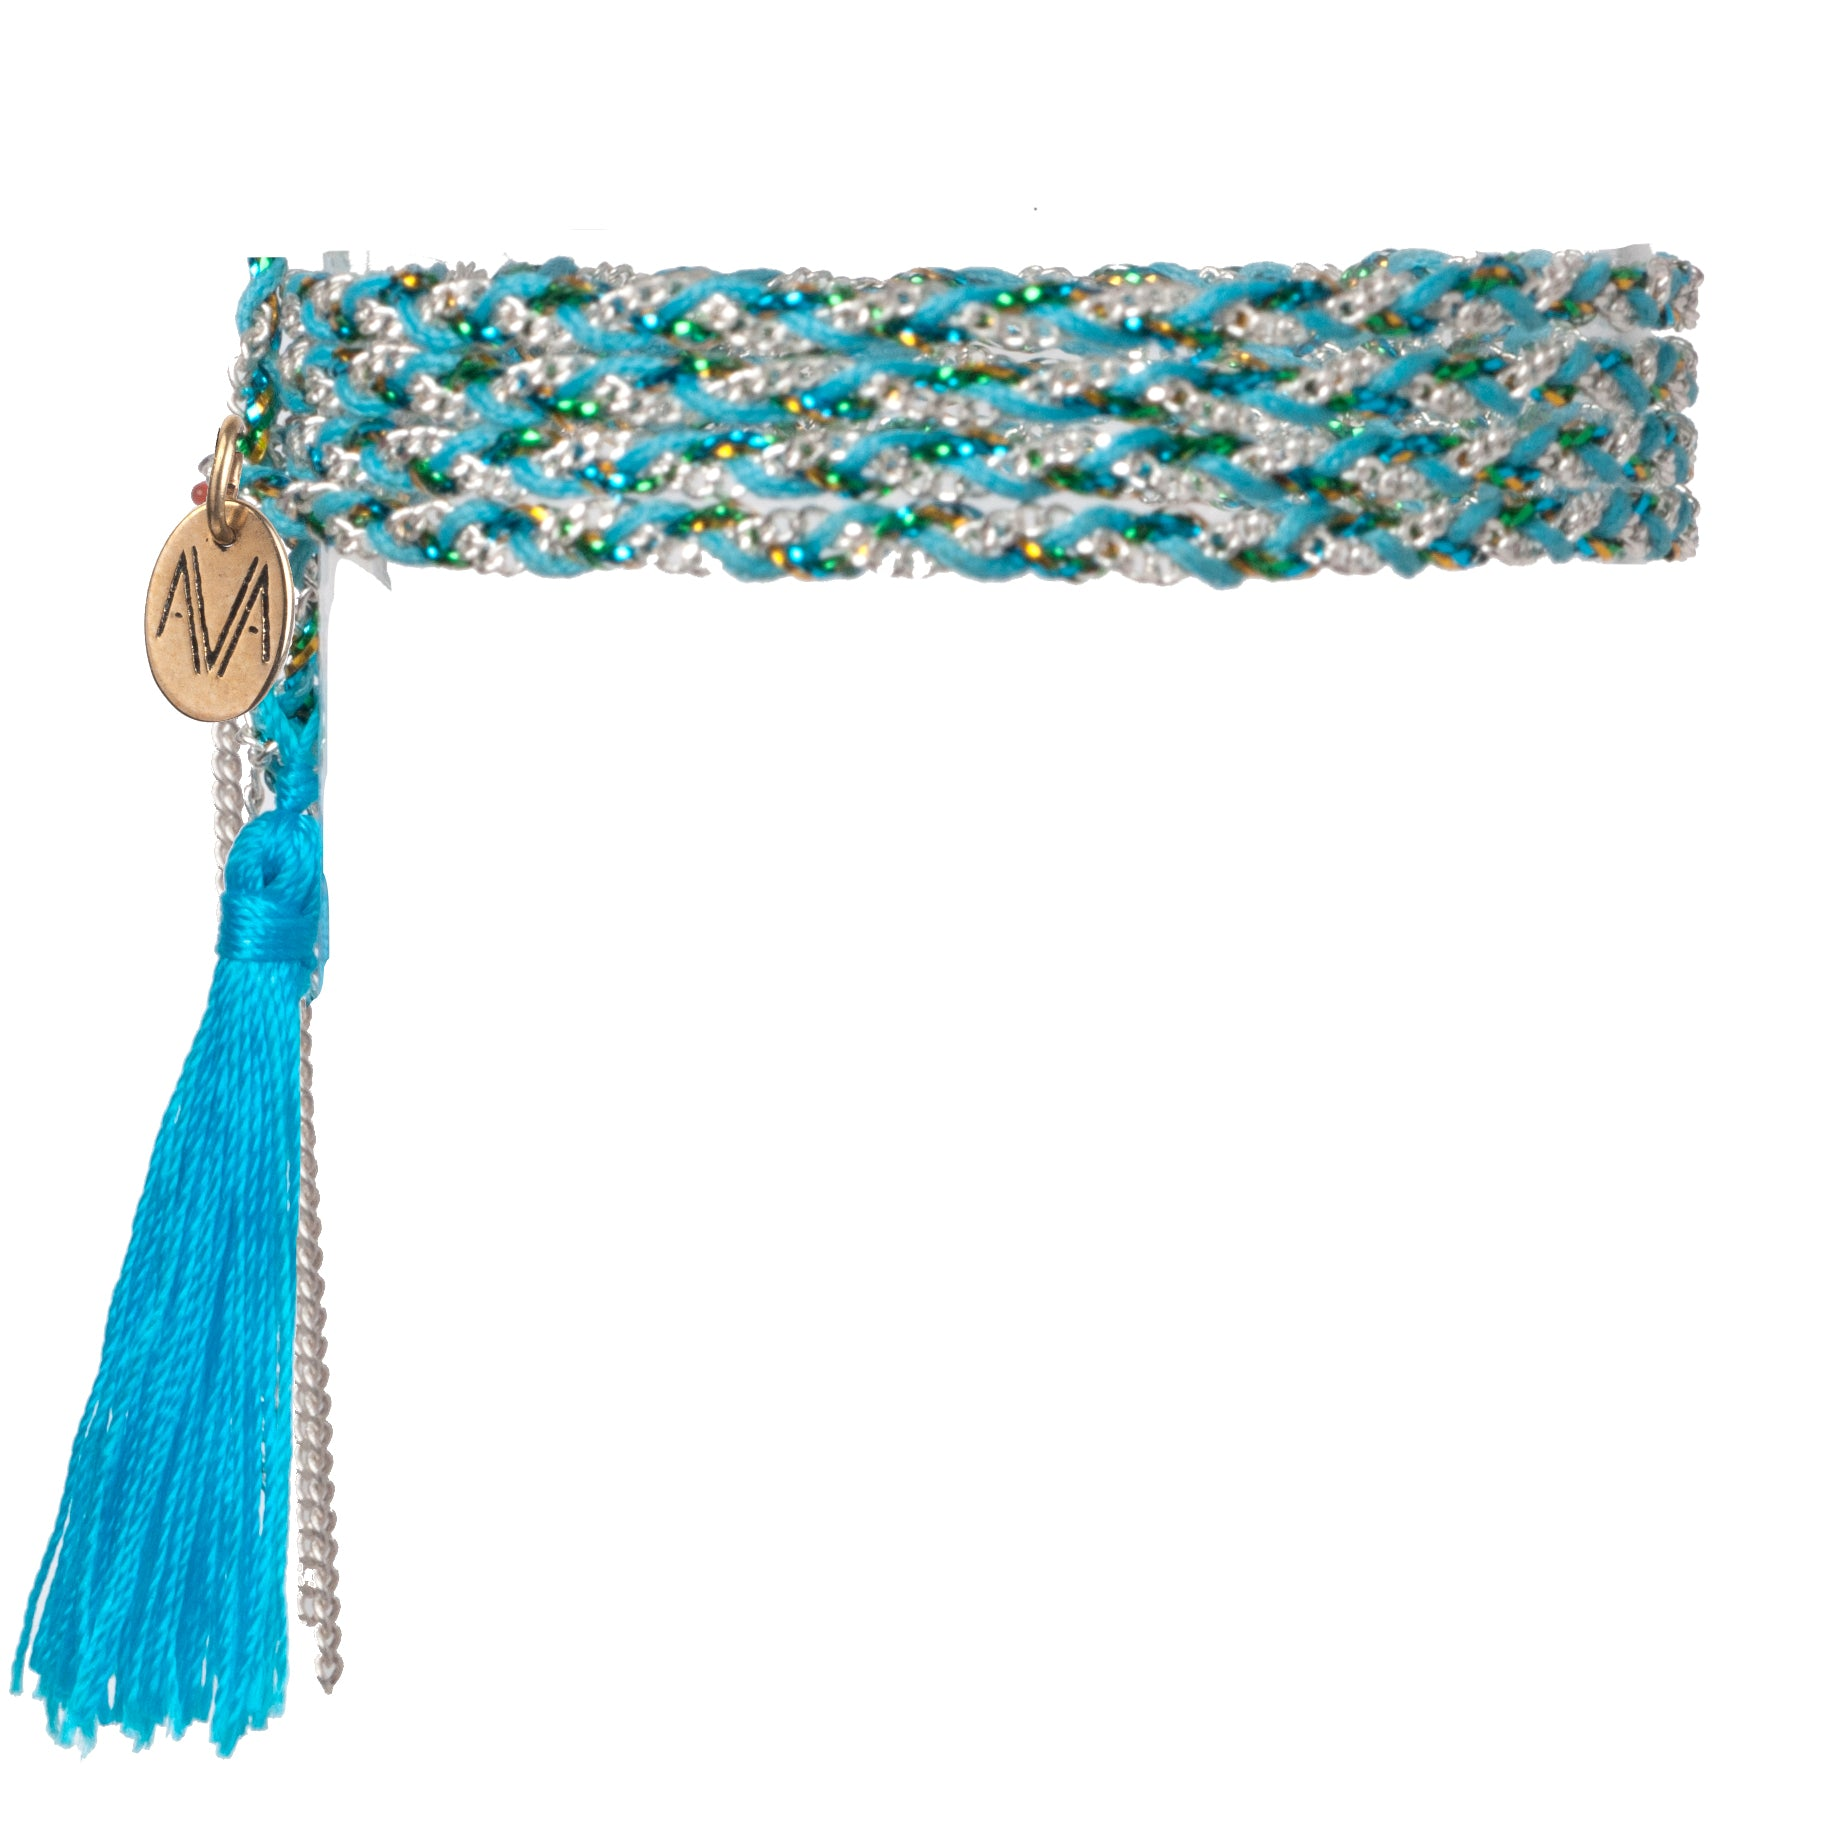 wrap bracelet made of Nylon, Lurex, nickel free chain, completed by an aqua tassel